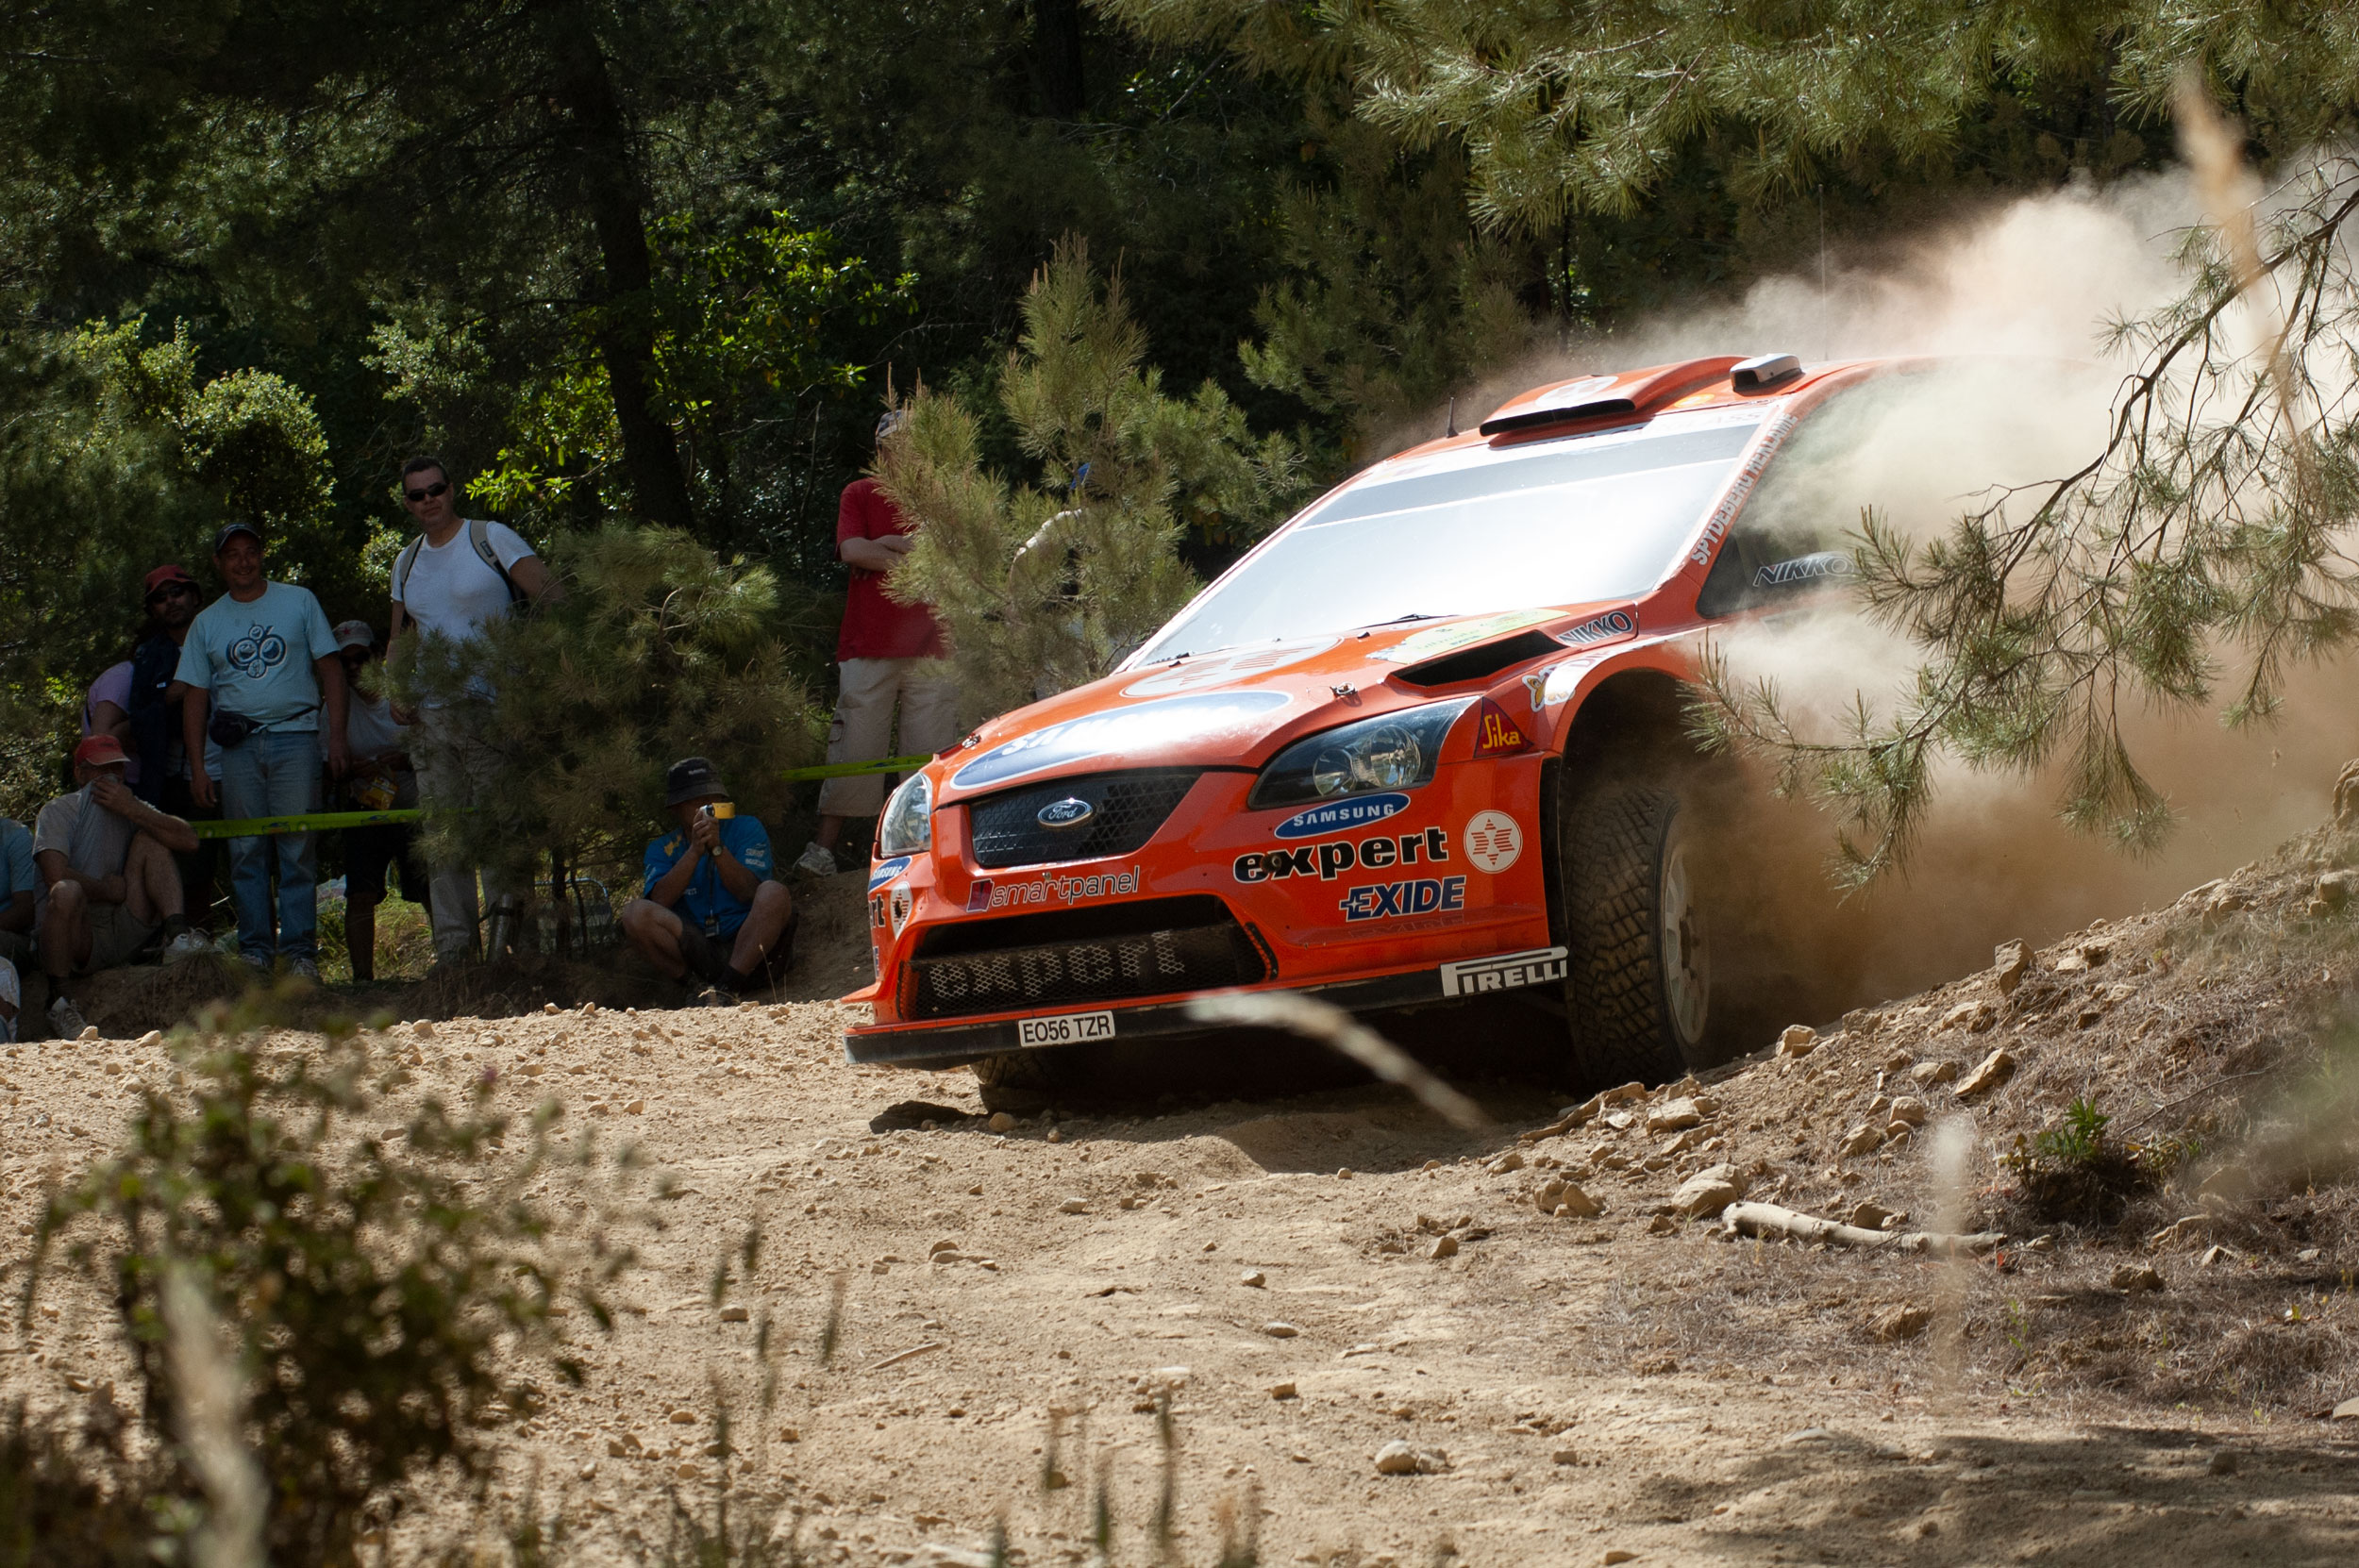 WRC, Rally Acropolis, Fotoreportage, Willi Nothers